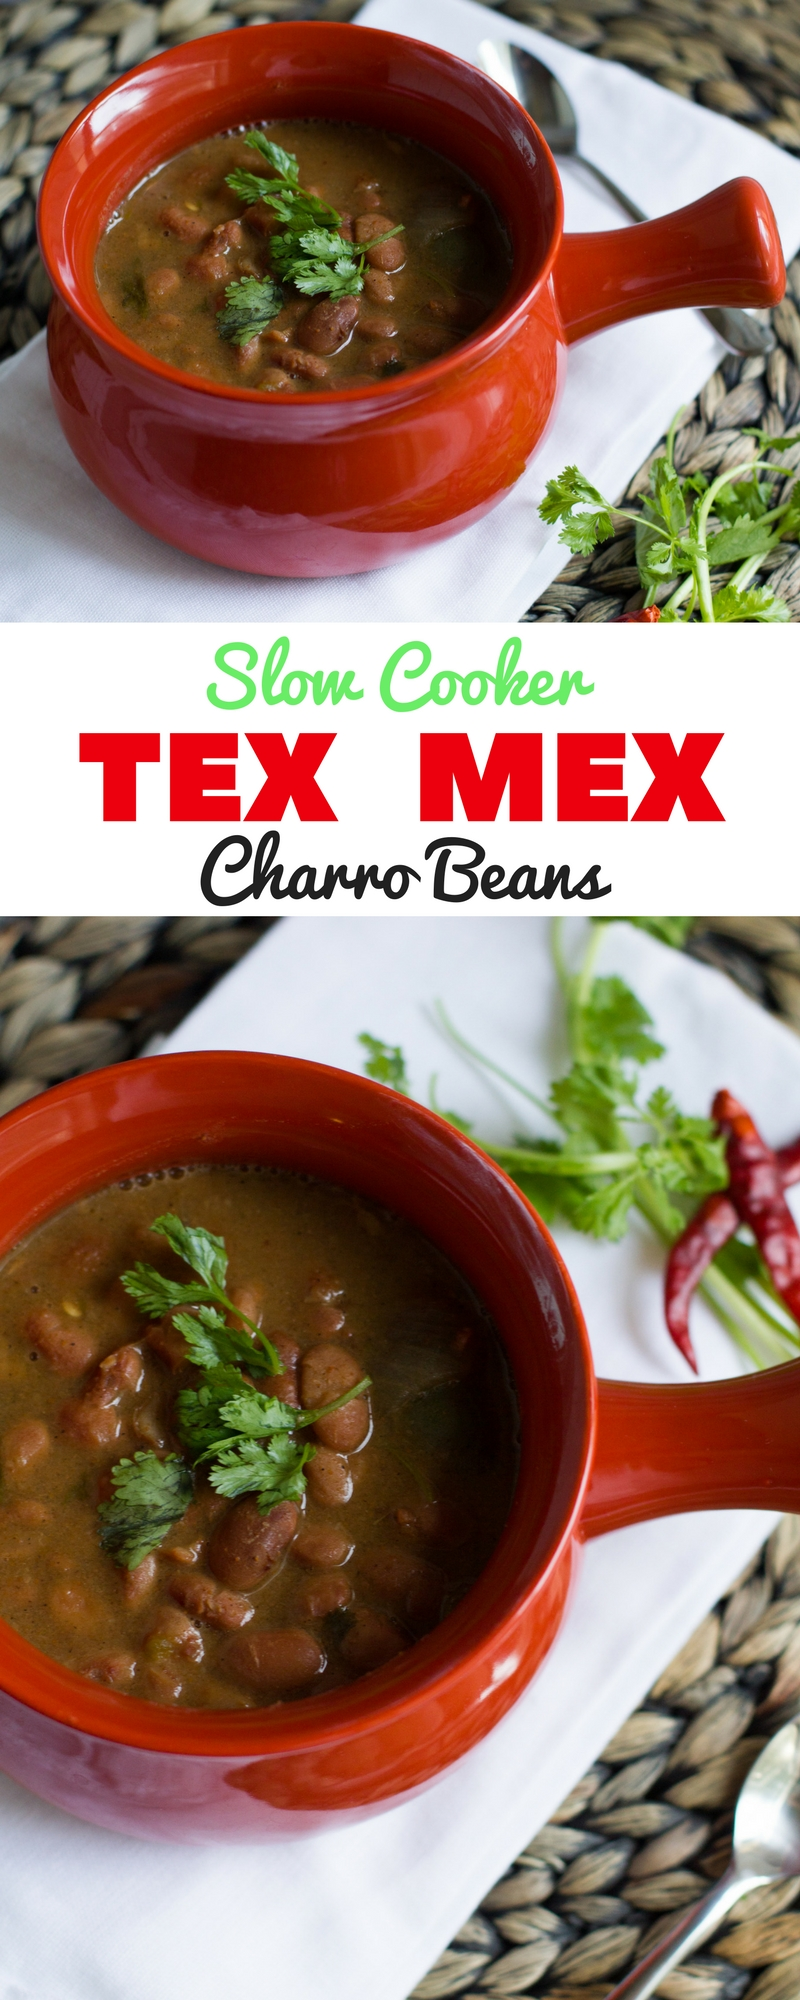 """Tex Mex Charro Beans. The easiest """"set-and-forget"""" slow cooker dish that will leave your house smelling like Tex Mex heaven."""